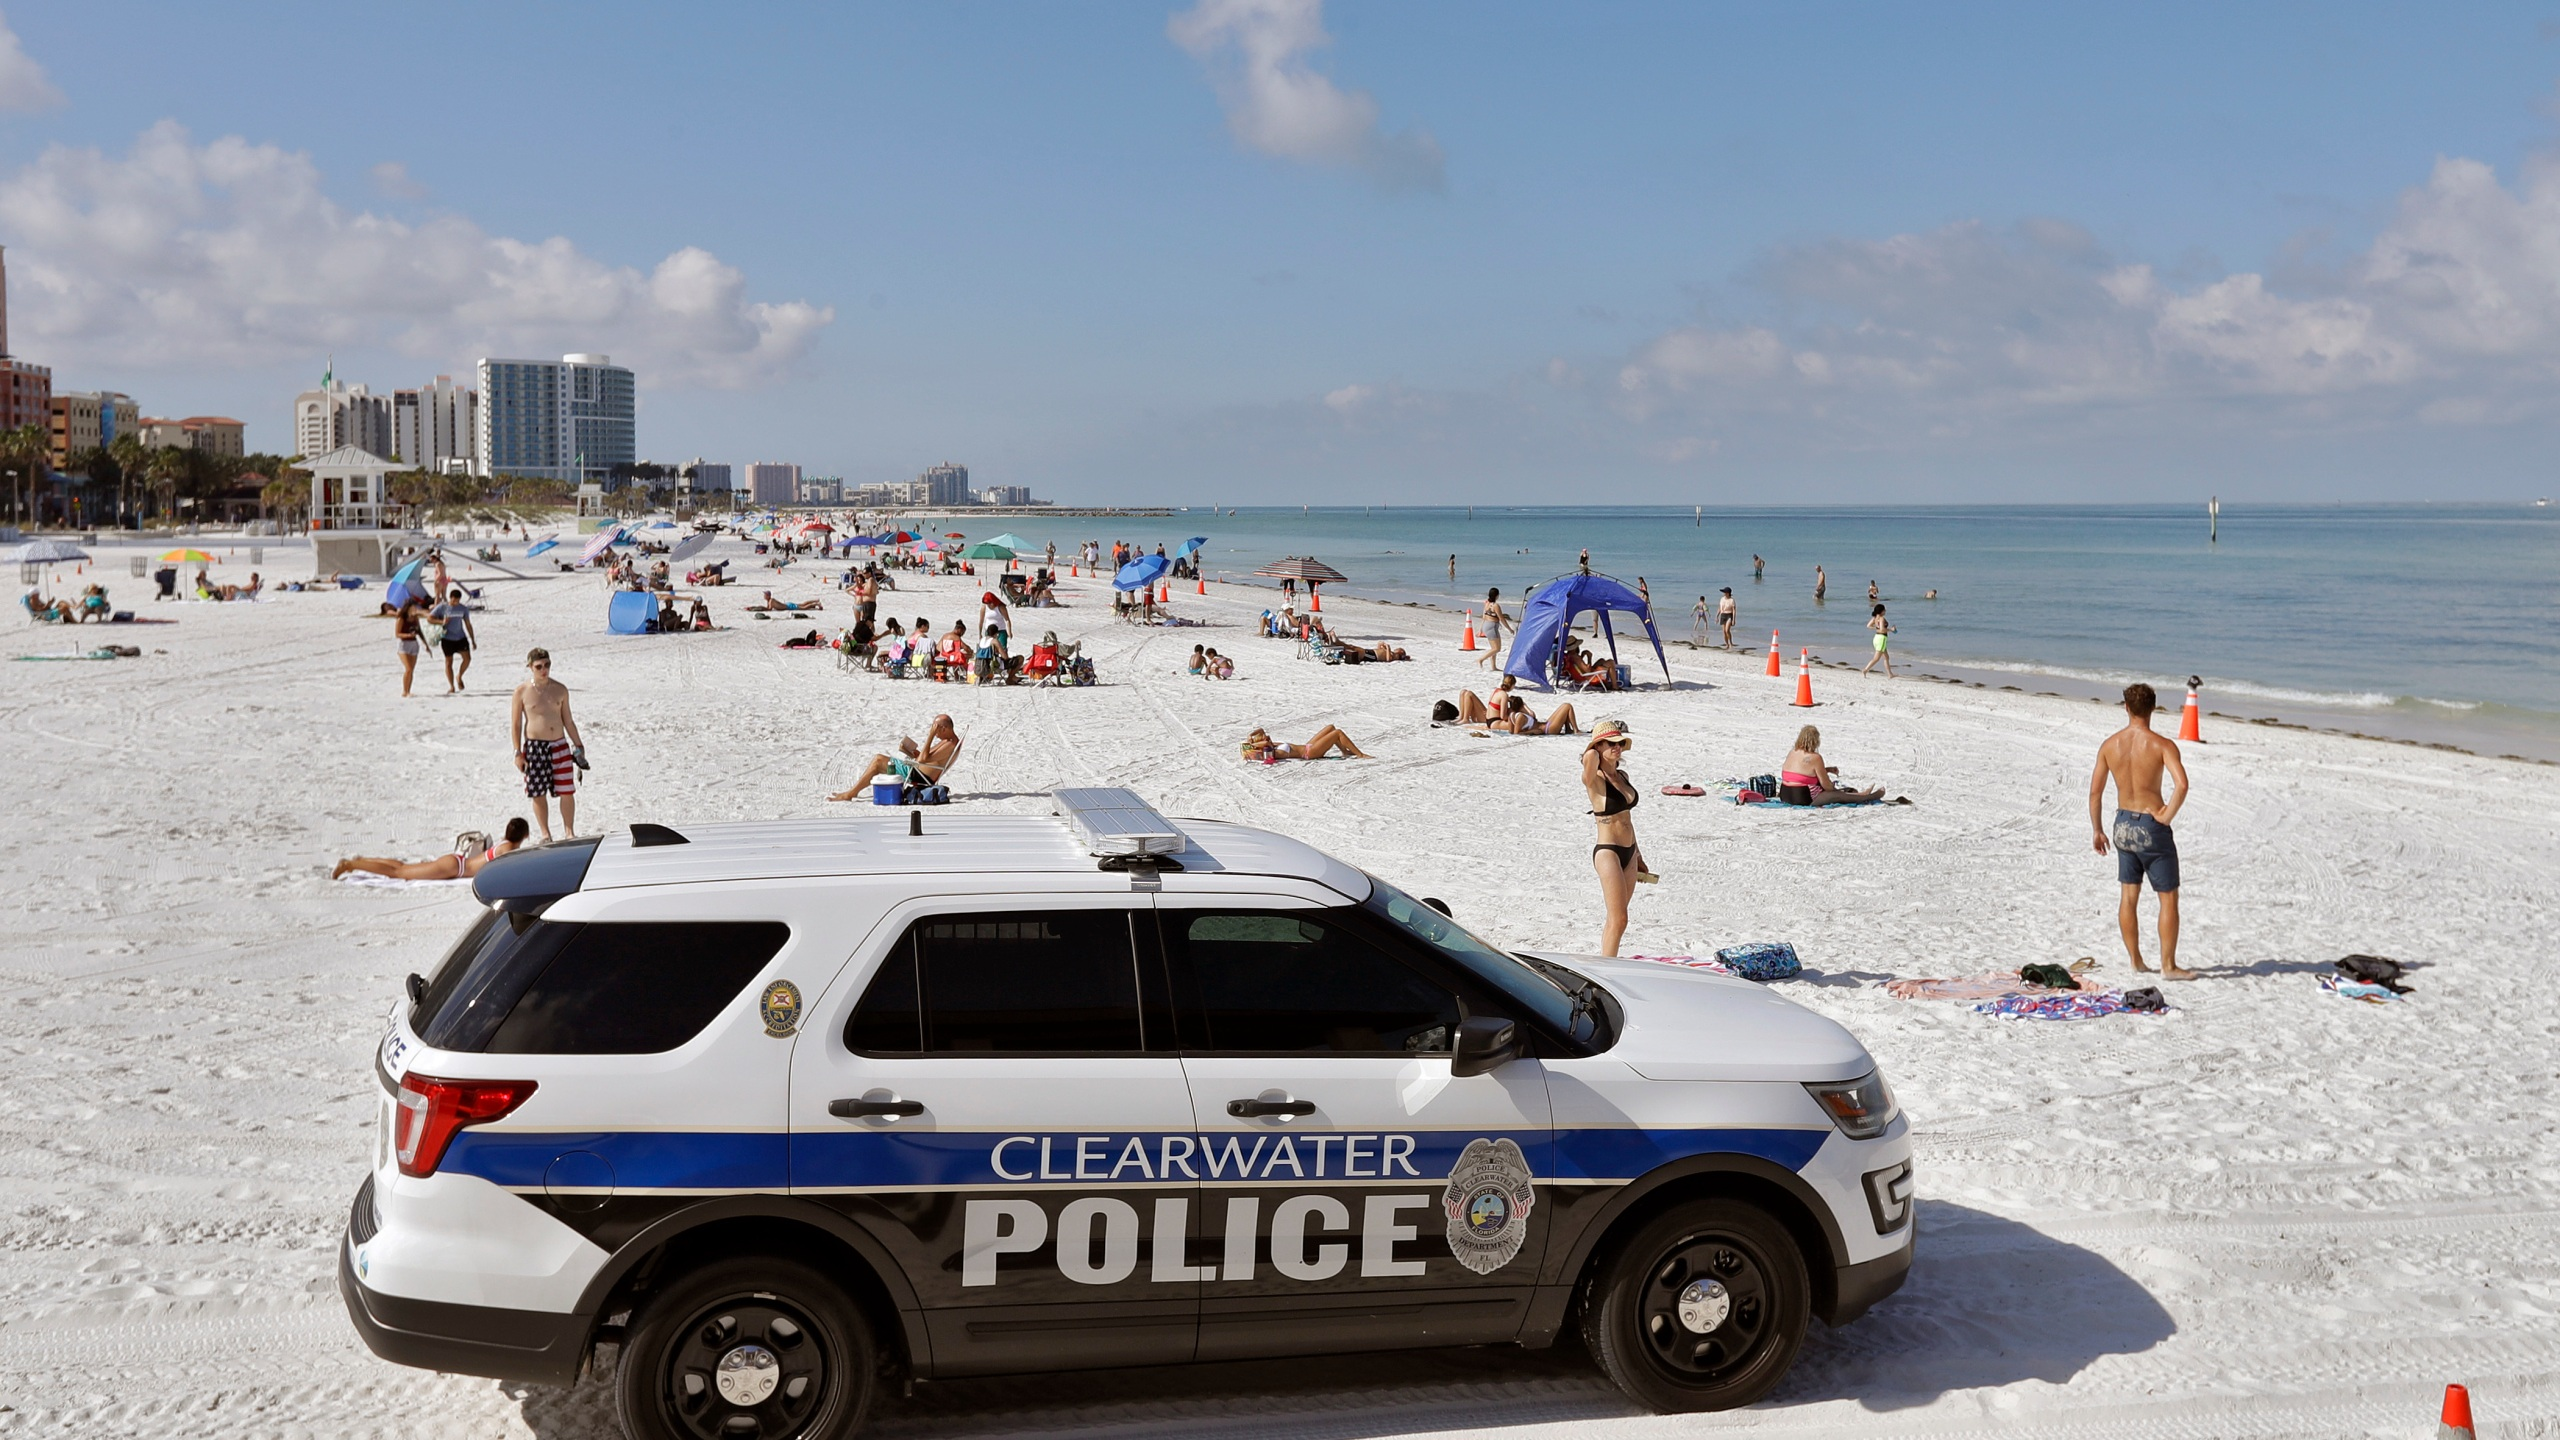 In this Monday, May 4, 2020 file photo, police officers patrol the area after Clearwater Beach officially reopened to the public in Clearwater Beach, Fla. (AP Photo/Chris O'Meara, File)